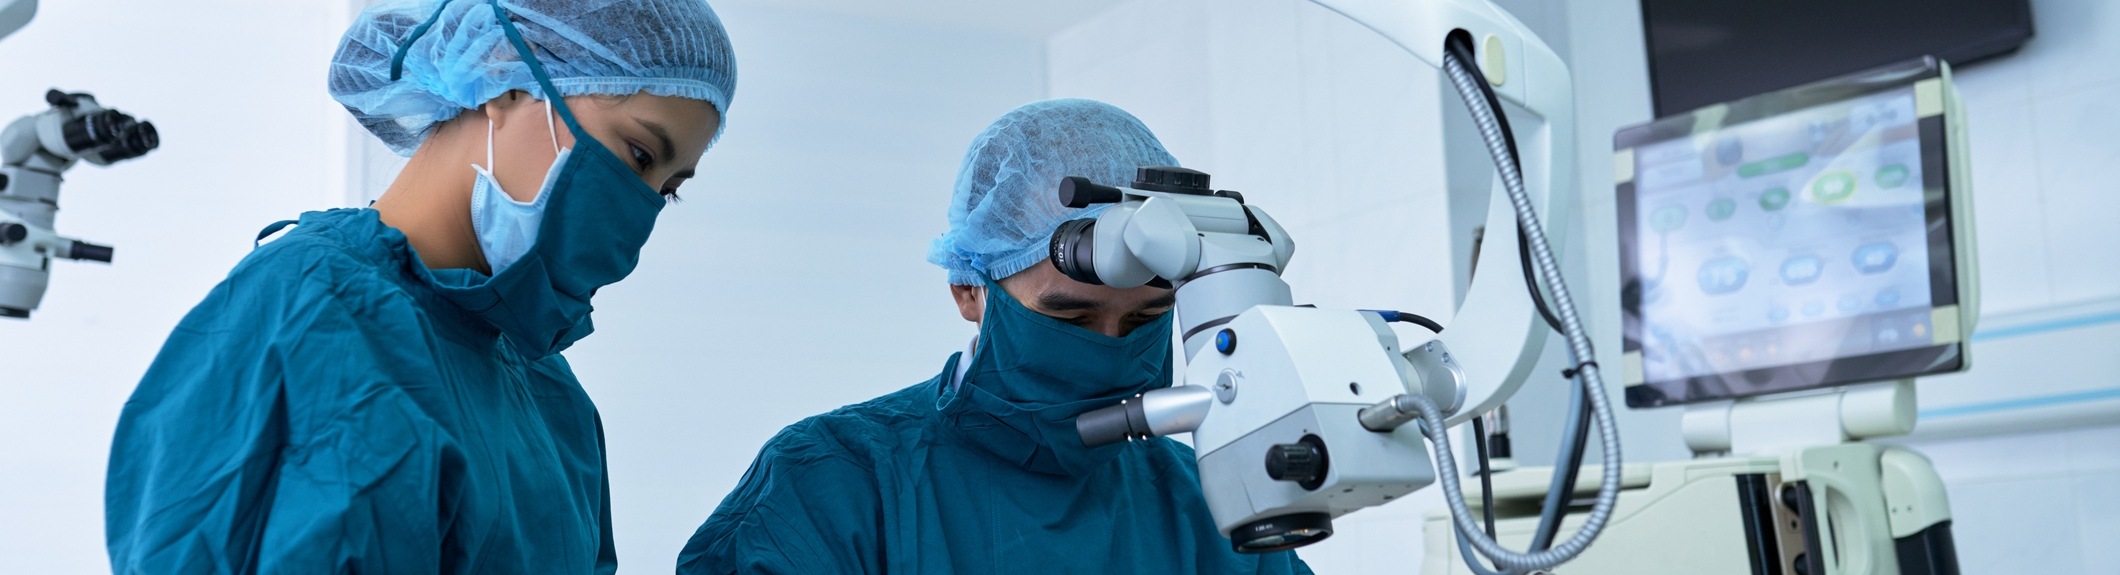 Healthcare - Organisations benefit from our technology in gas detection instruments. Our laser protection filters safeguard the eyes of surgeons in operating theatres. And our products enable patient monitoring systems that give carers vital physiological data.